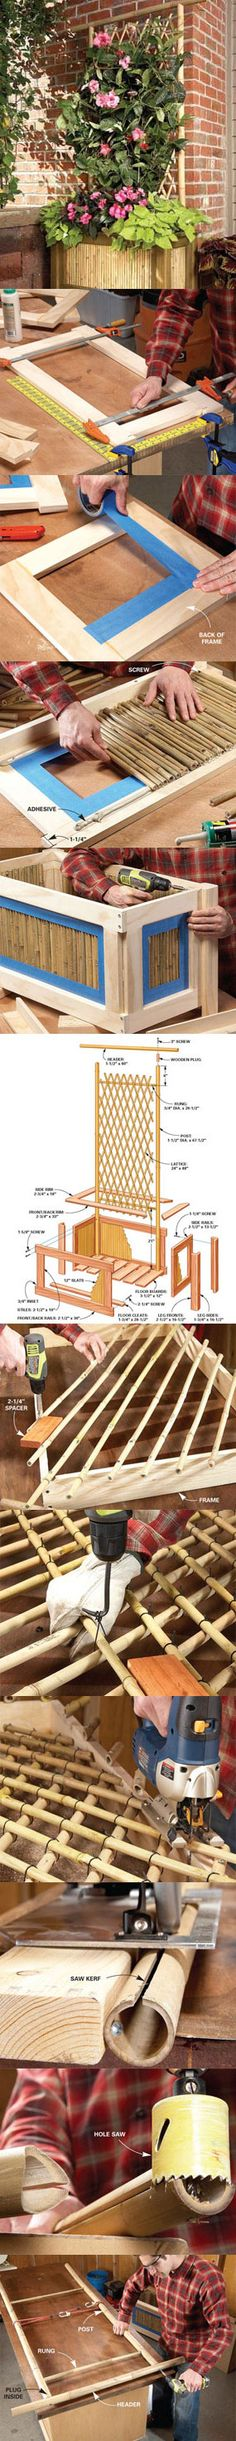 Building With Bamboo: Planter And Trellis